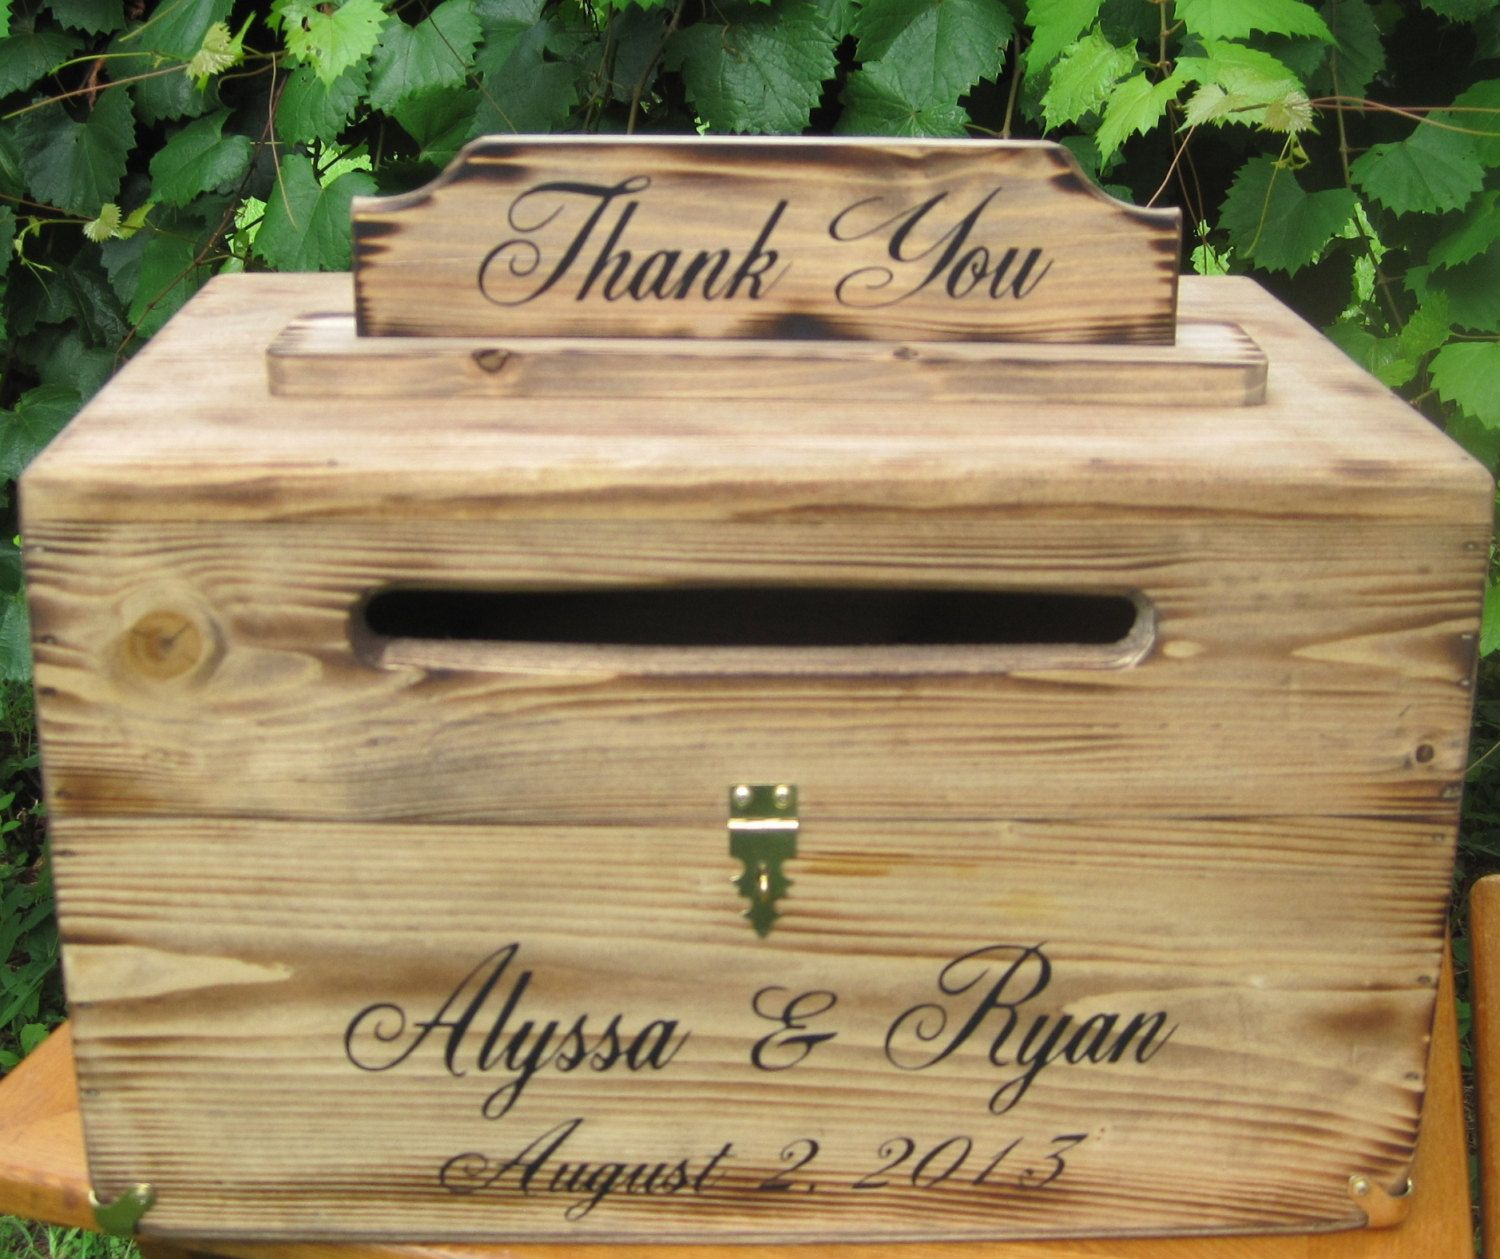 wood wedding card holders%0A Wedding Rustic Card Box Country Chest Cards Thank You woodland Personalized  Custom Wood wooden Barn style